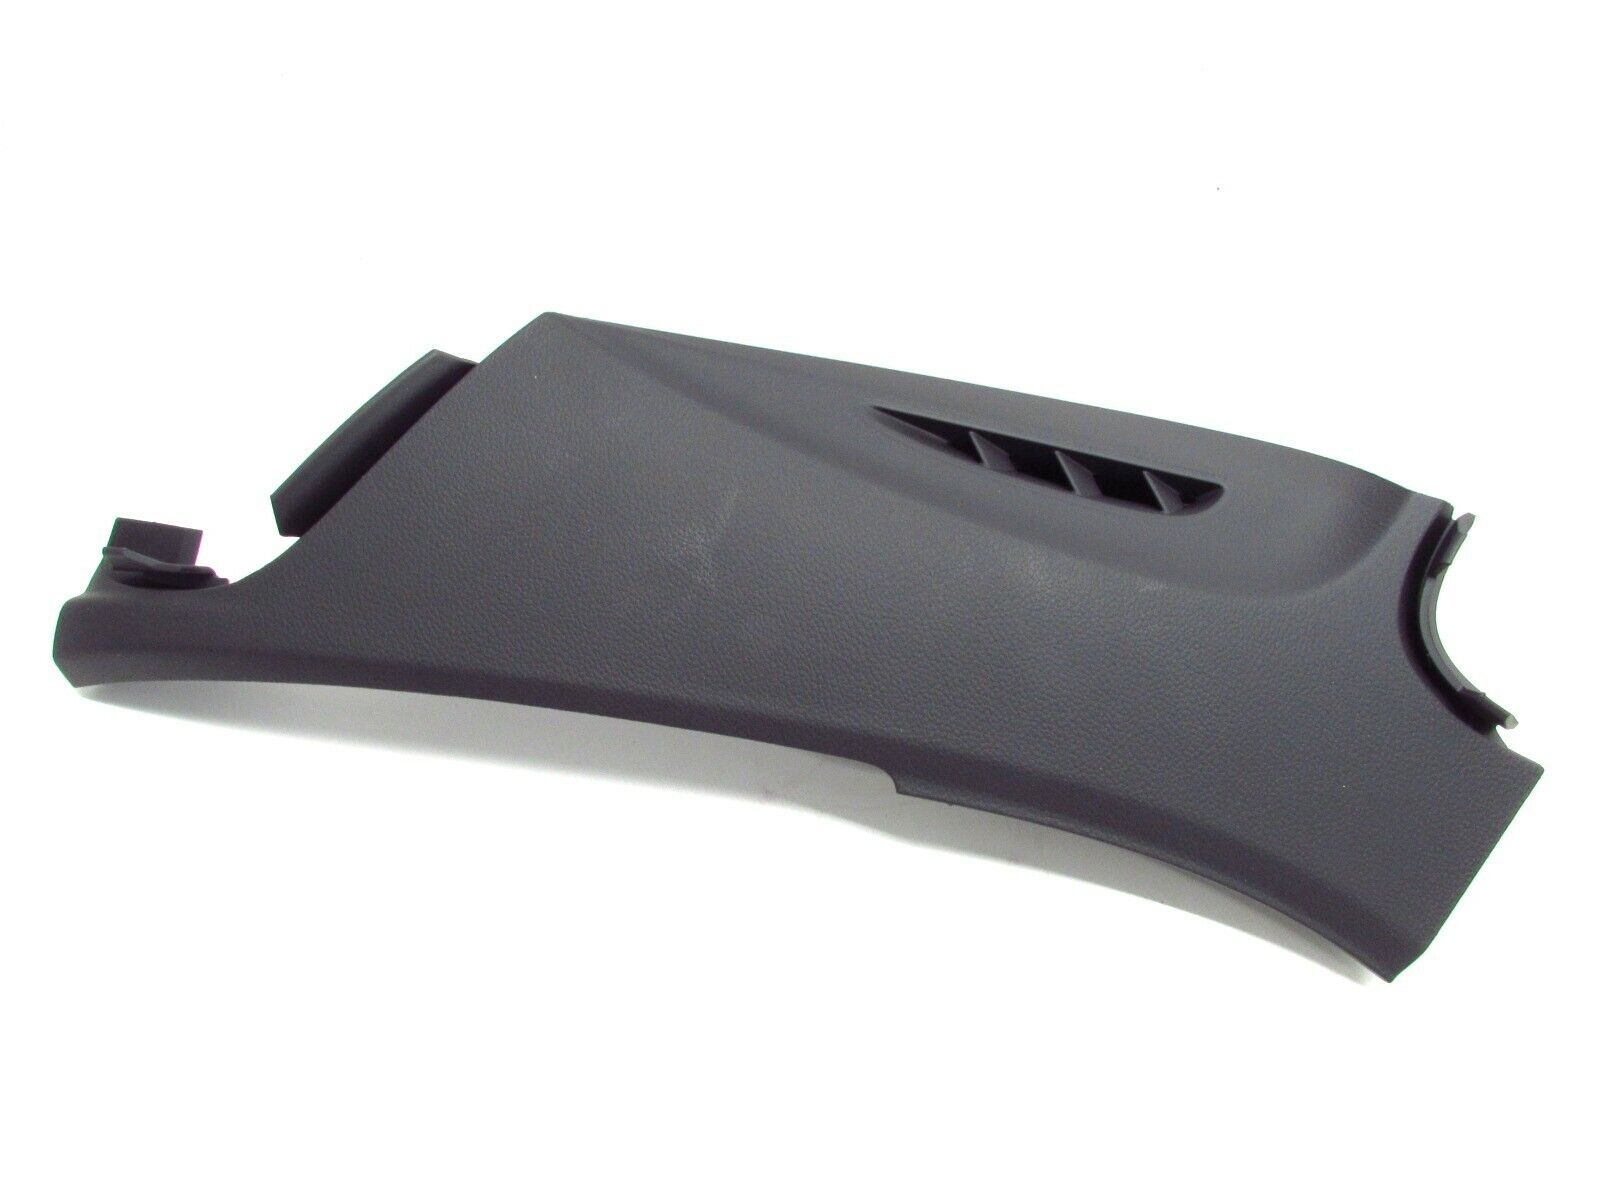 Opel Zafira Tourer C Dashboard Trim outside Left 13289747 Black